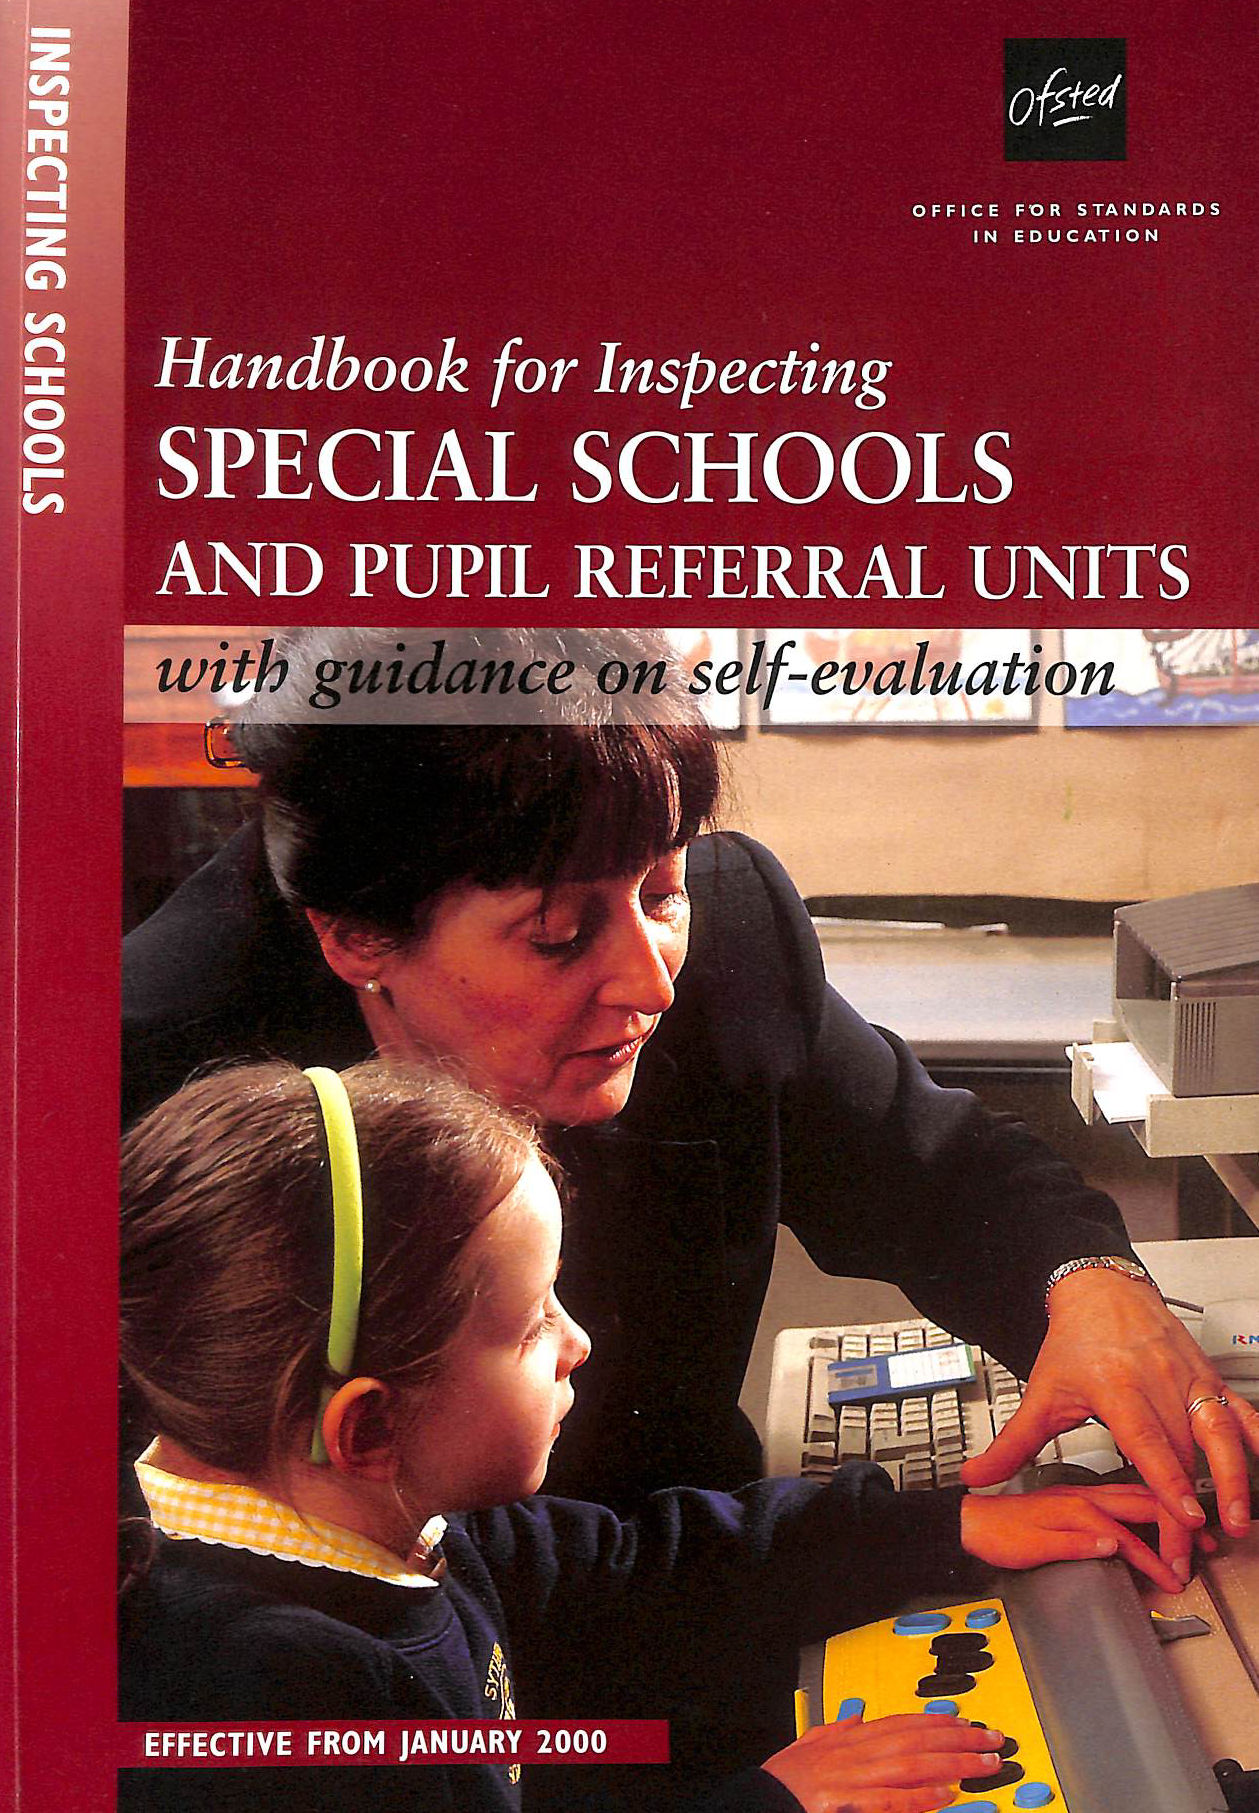 Image for Handbook for Inspecting Special Schools and Pupil Referral Units (Ofsted Handbook)